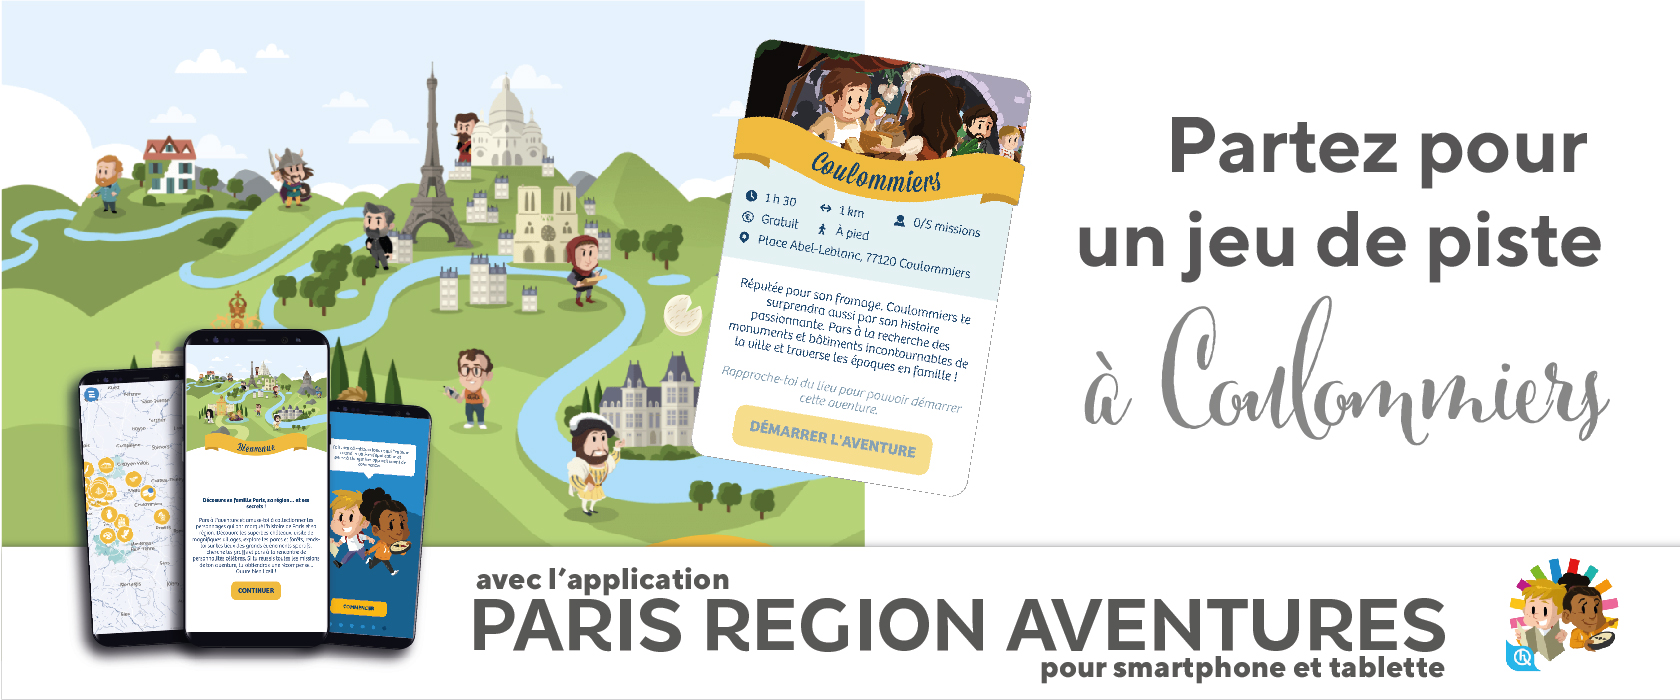 L'application Paris Région Aventure